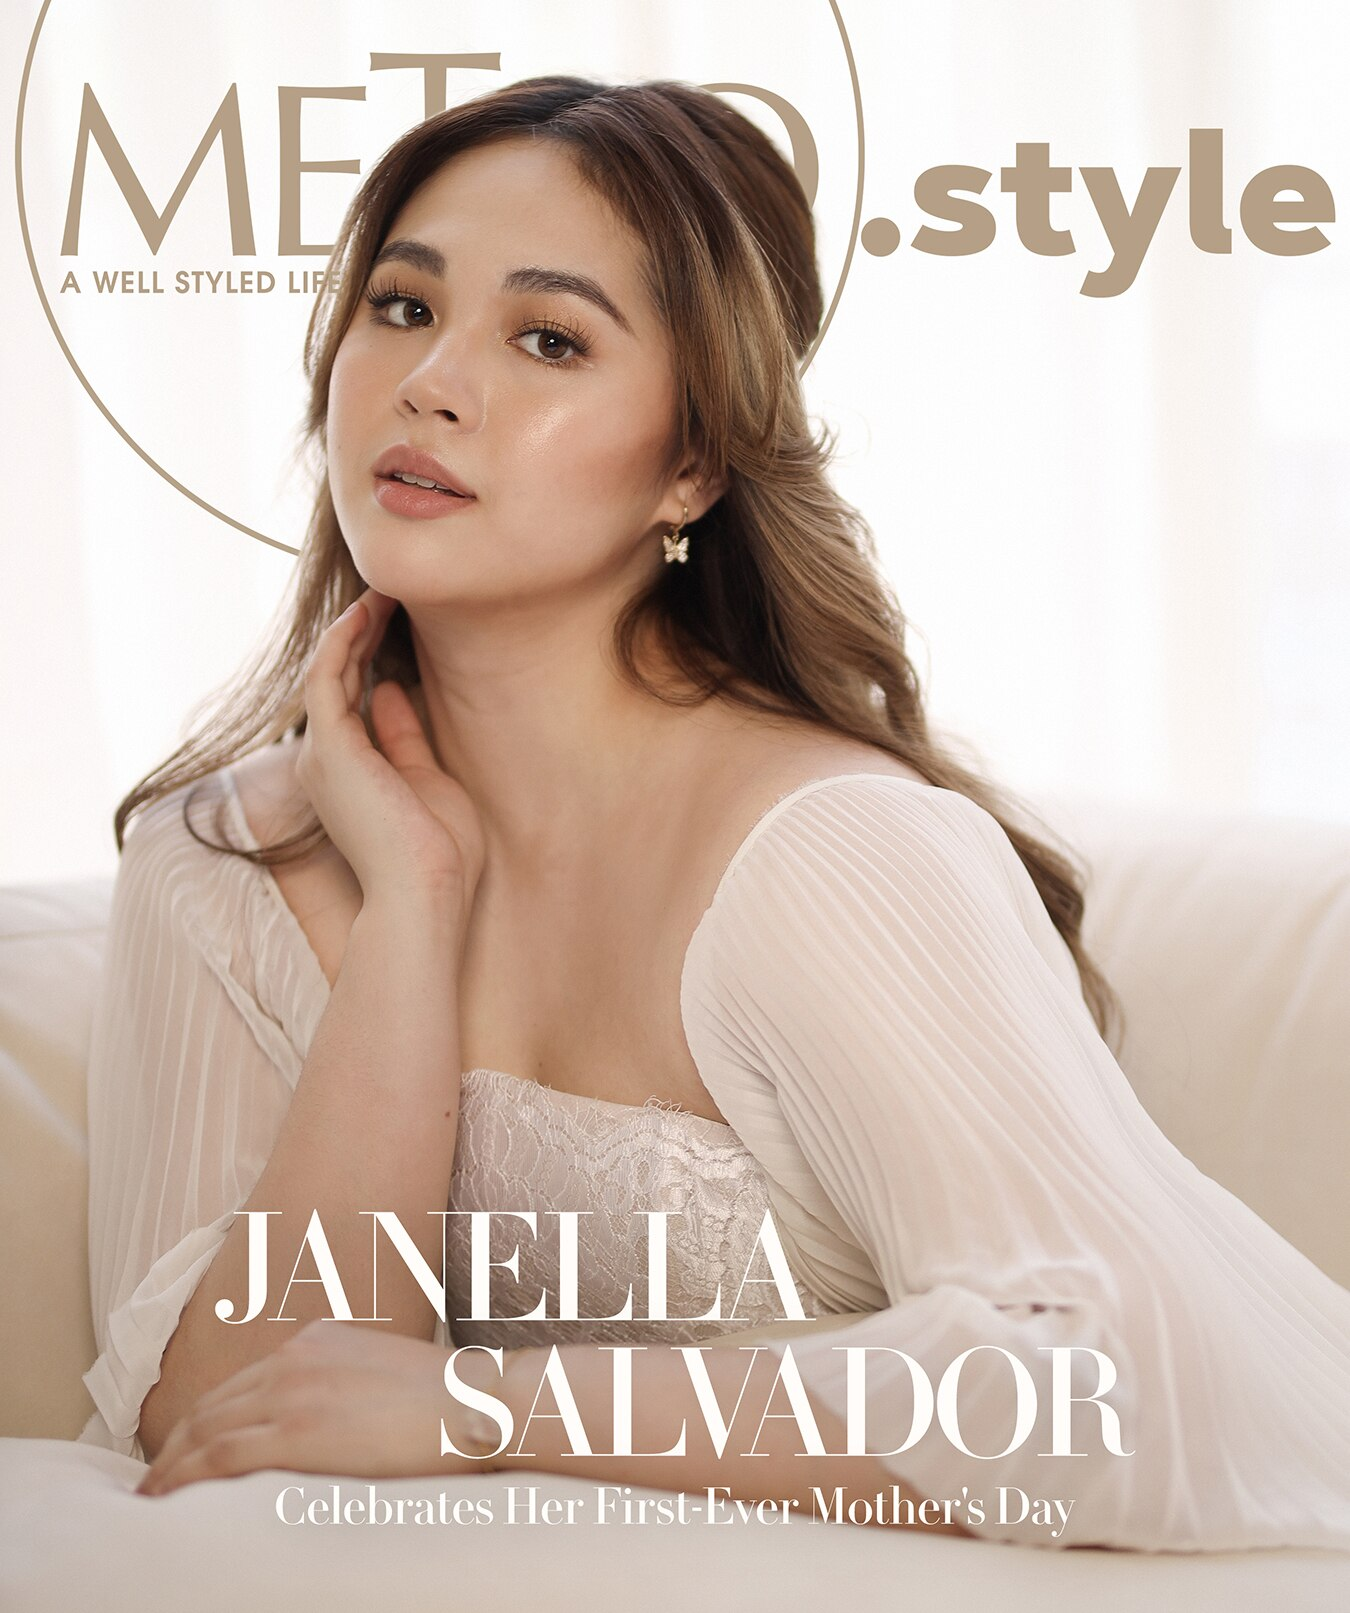 Janella Salvador on the cover of MetroStyle